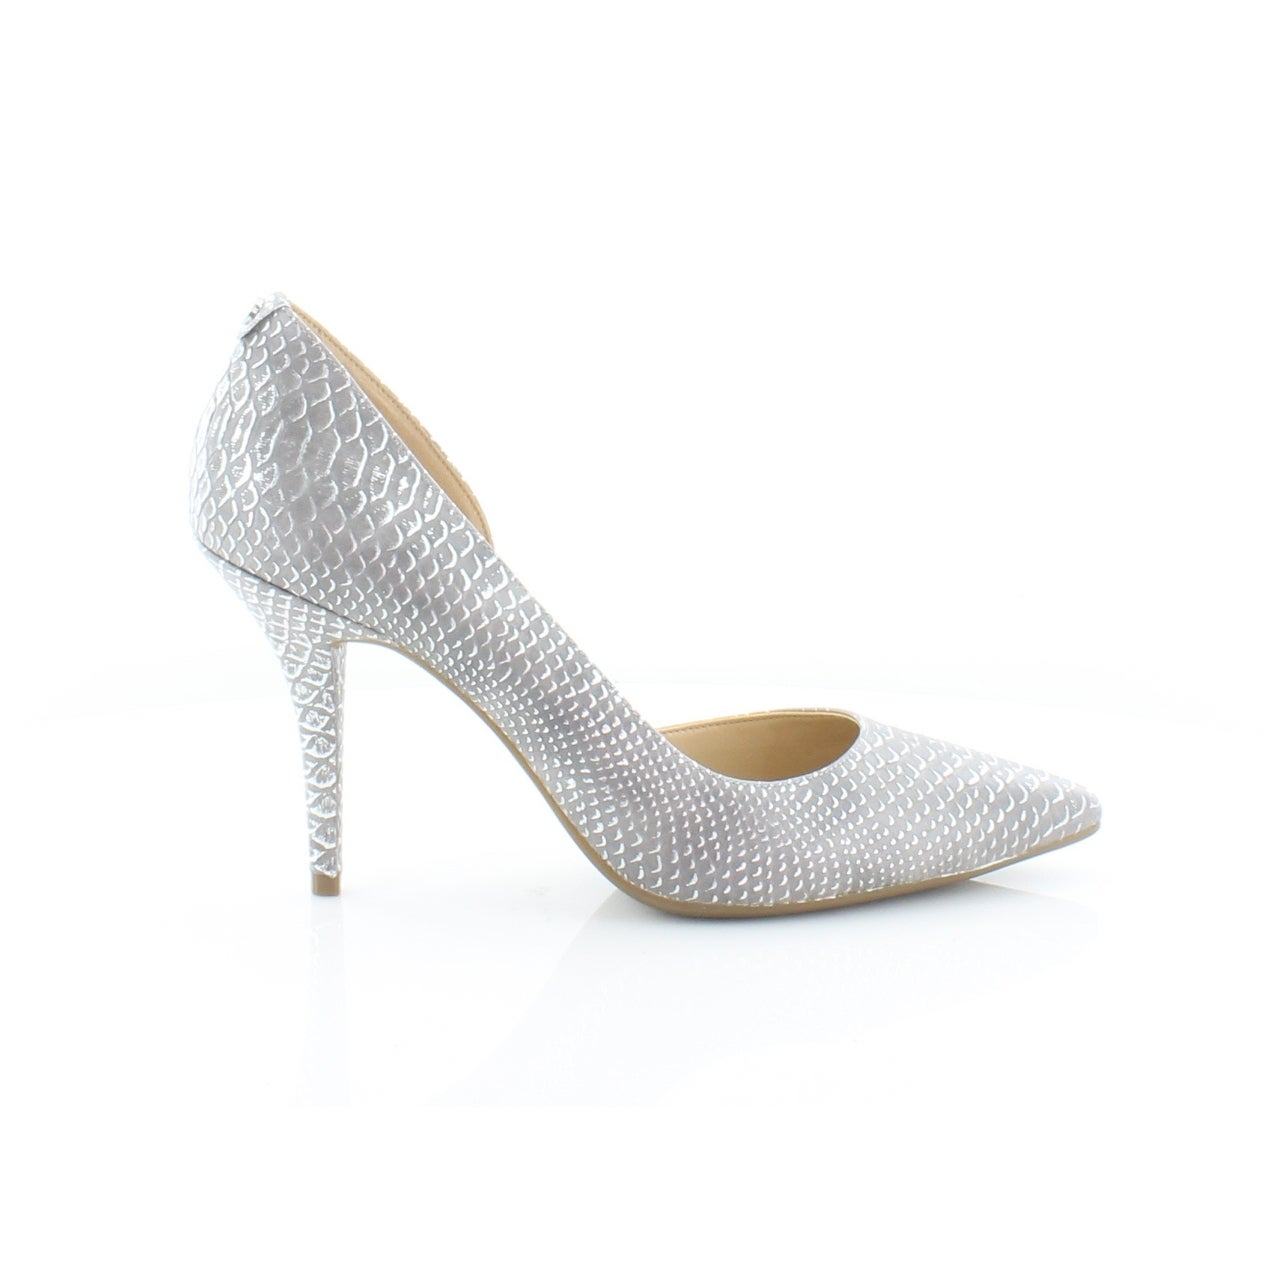 d1f5e5a99f Shop Michael Kors Nathalie Flex Pump Women's Heels Silver - Free Shipping  Today - Overstock - 28306728